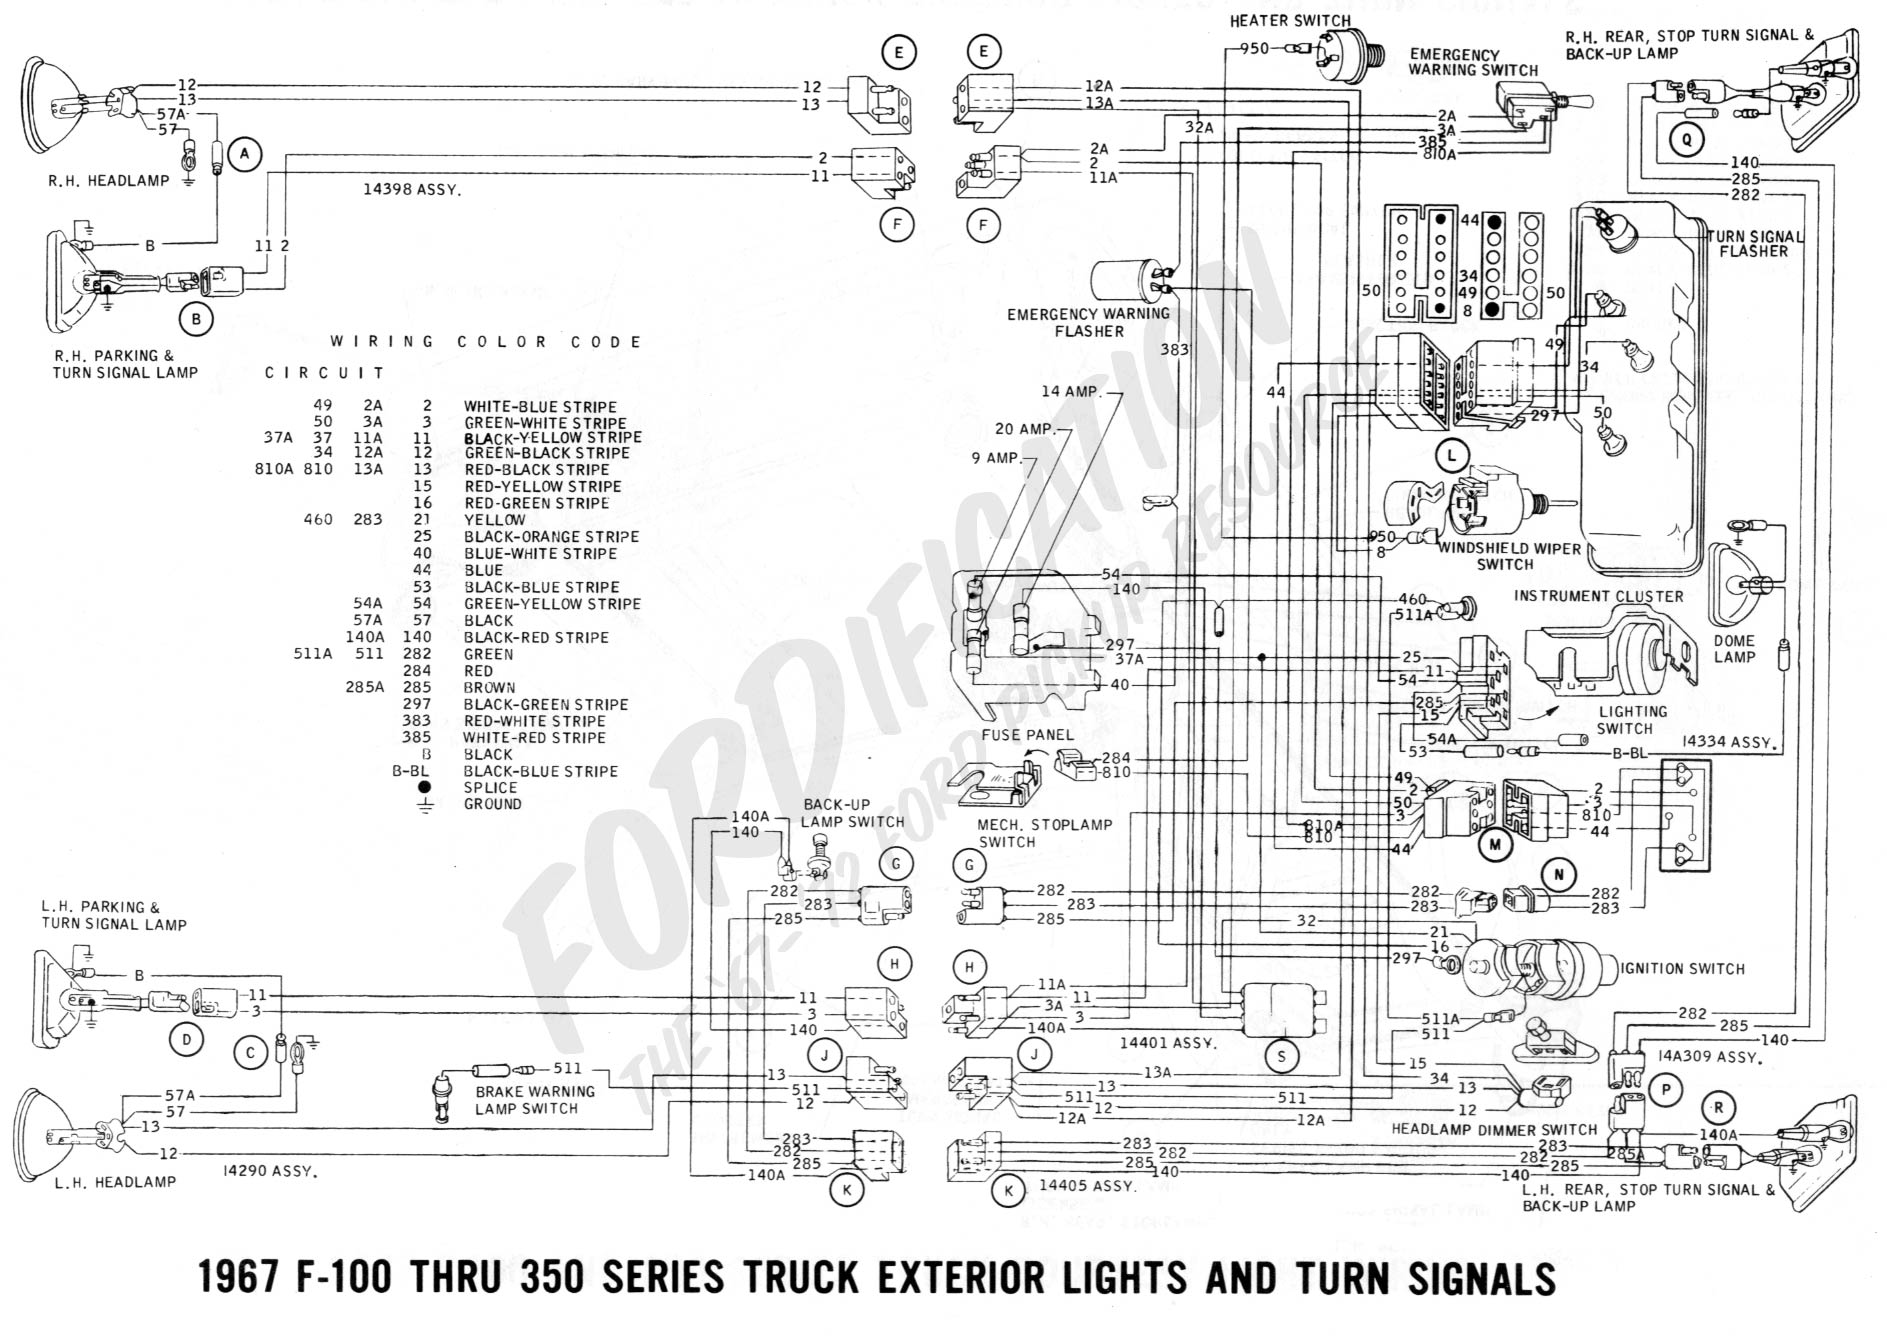 04 F350 Reverse Light Wire Diagram Block Wiring Explanation Ops Diagrams Ford Truck Technical Drawings And Schematics Section H F 350 01 Front Axle Hub Assembly